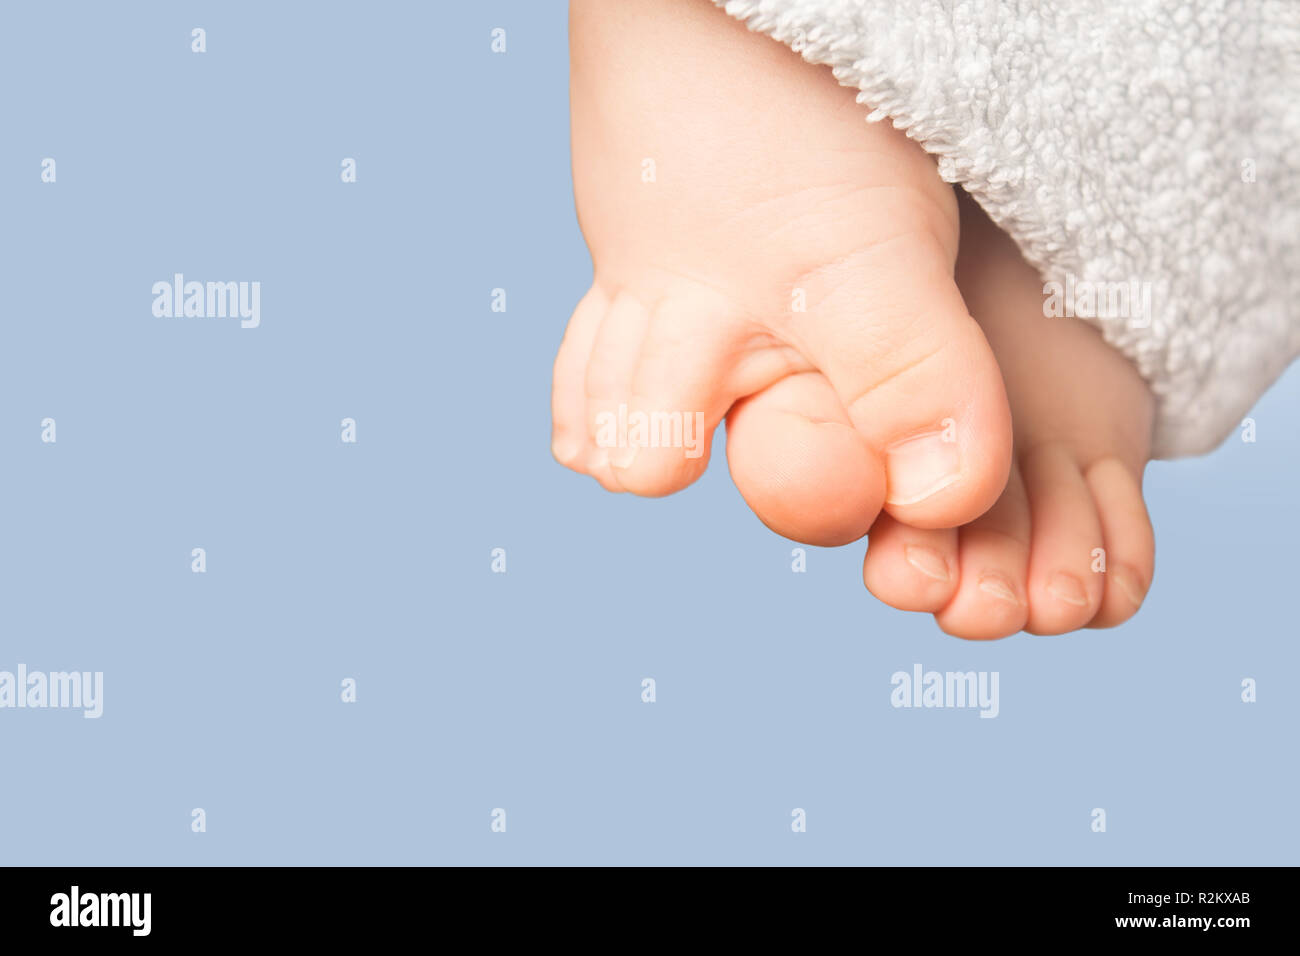 Smal baby feet with blue terry towel on blue background, isolated photo - Stock Image